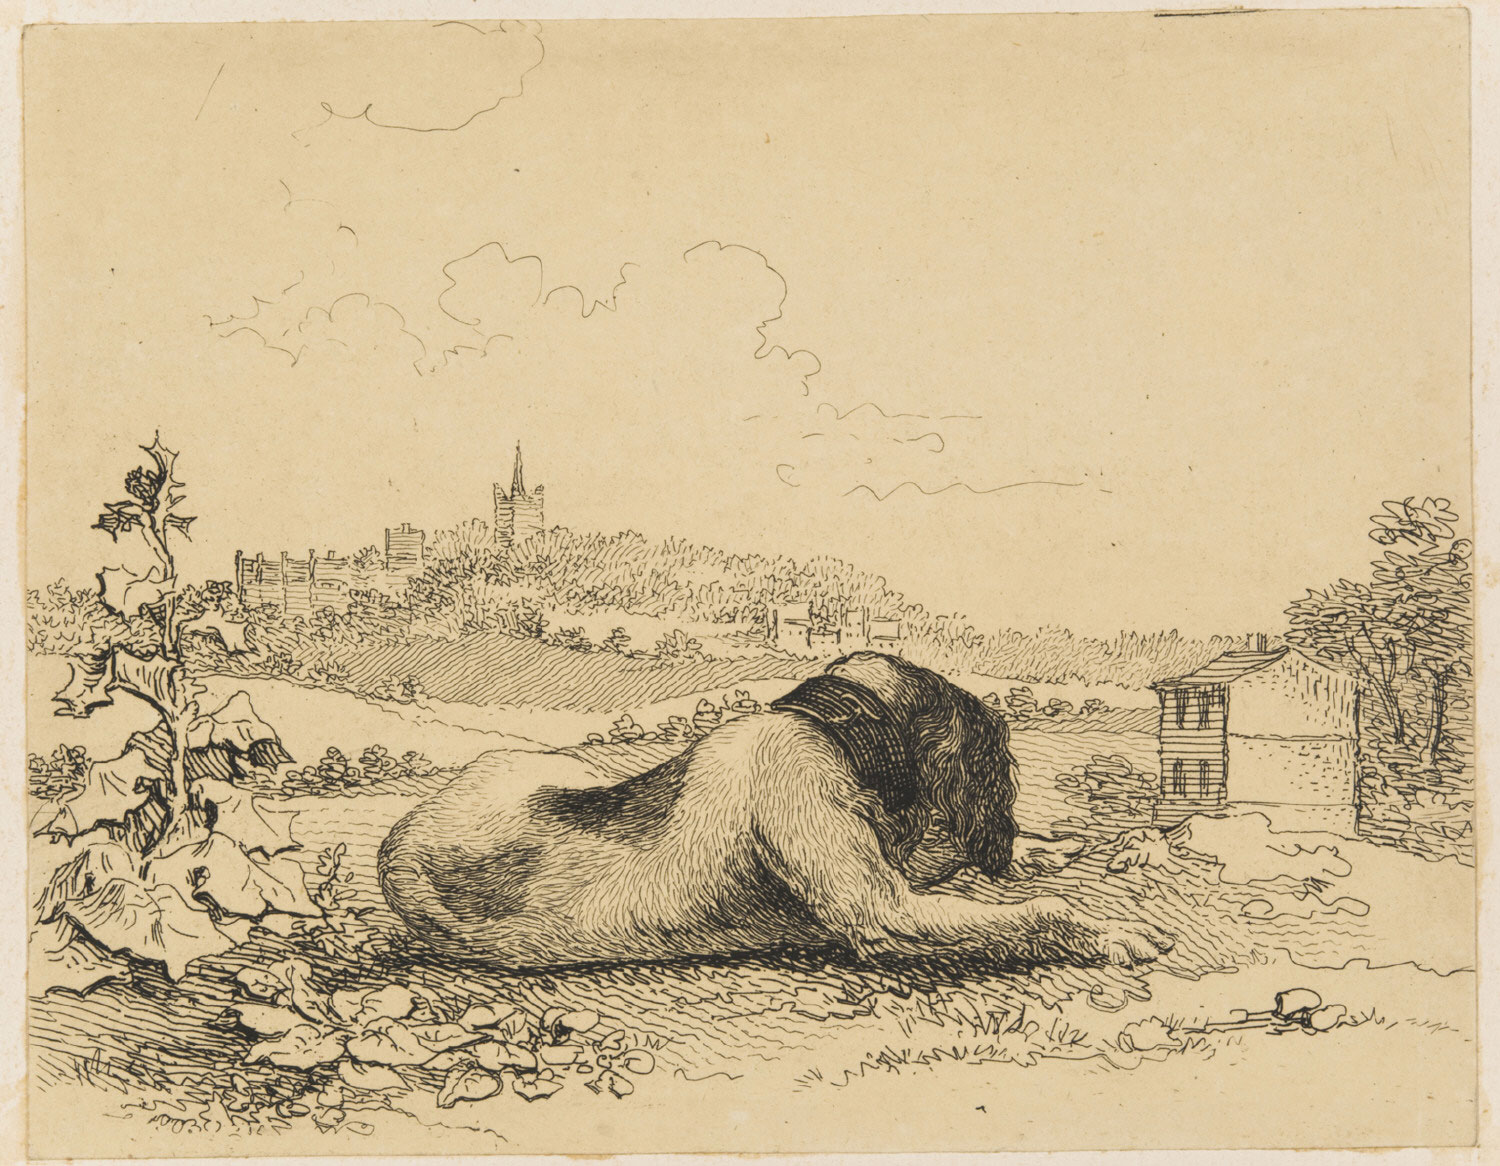 English Water Dog Resting, with a Town in the Distance